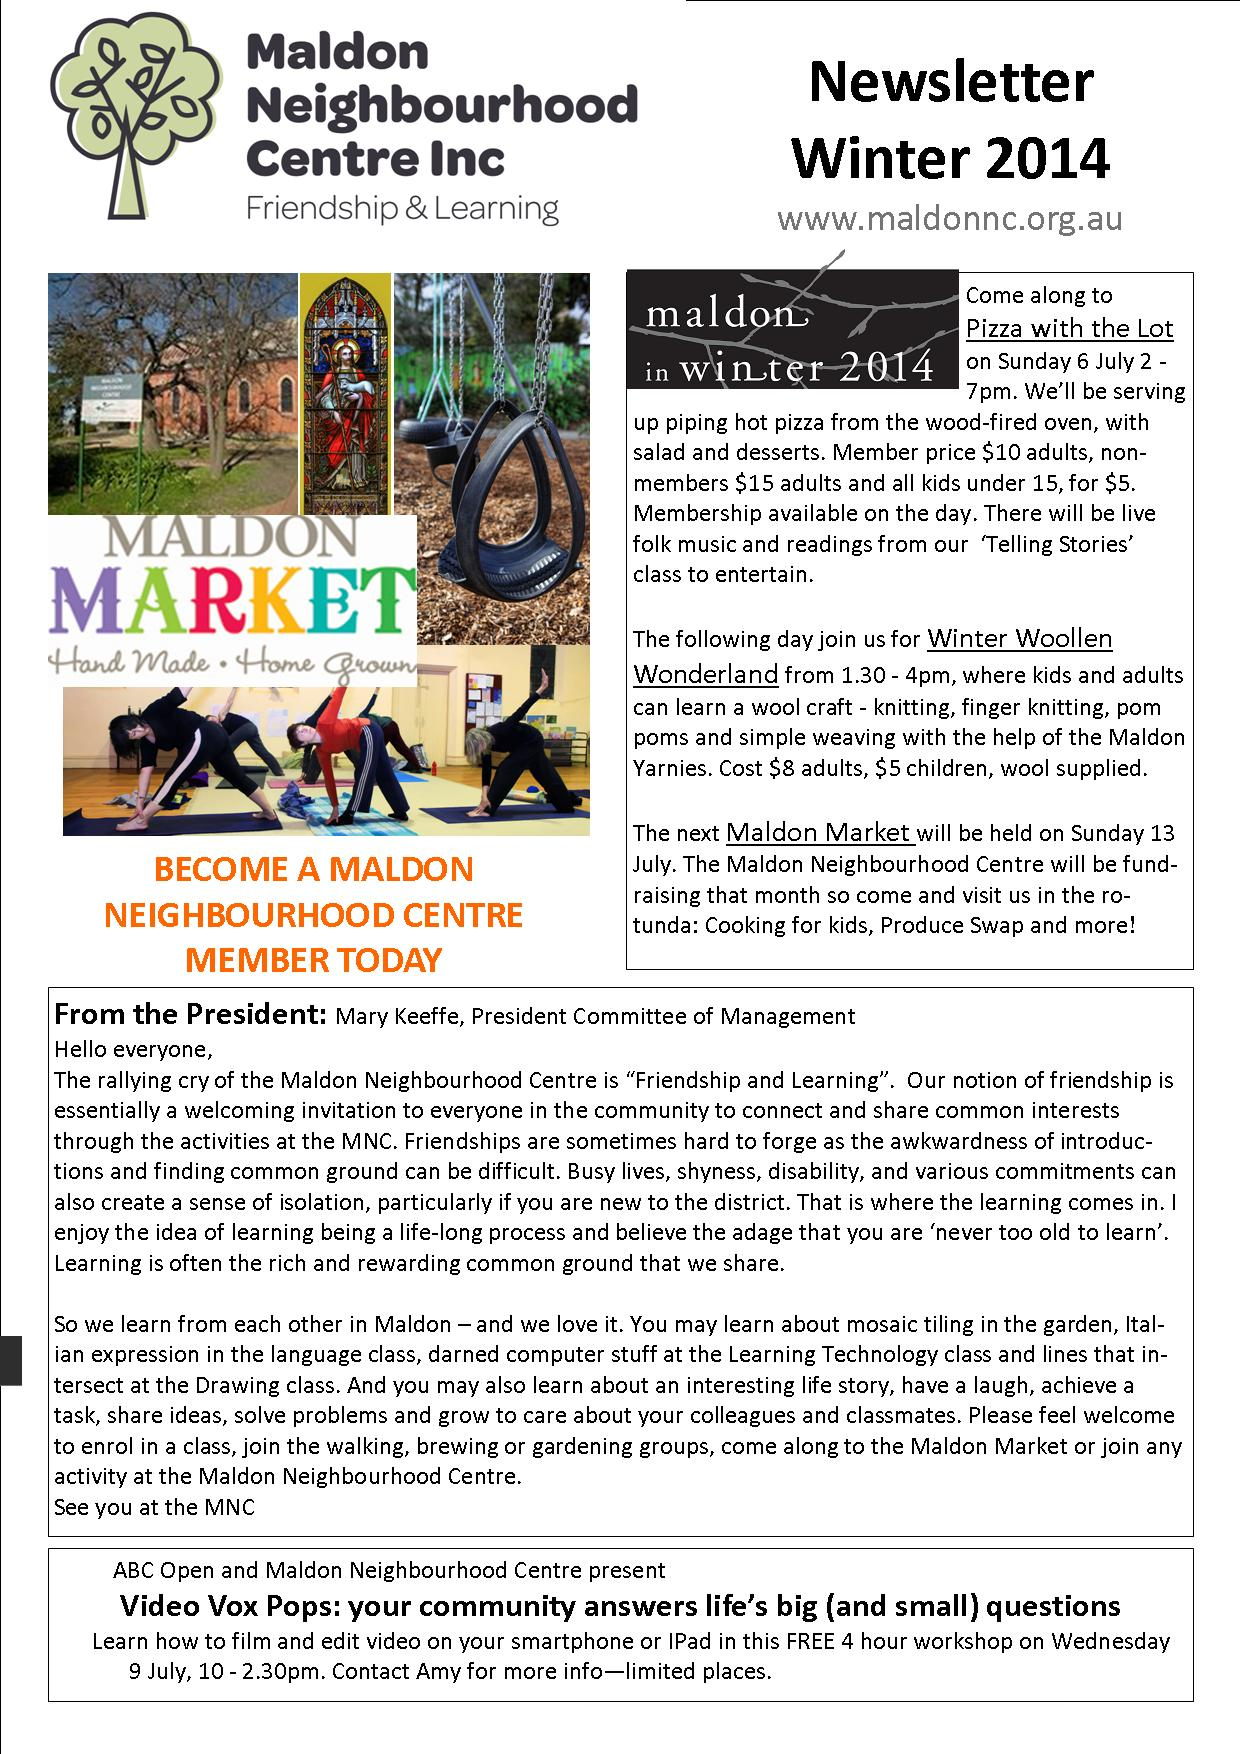 Newsletter Winter 2014 2